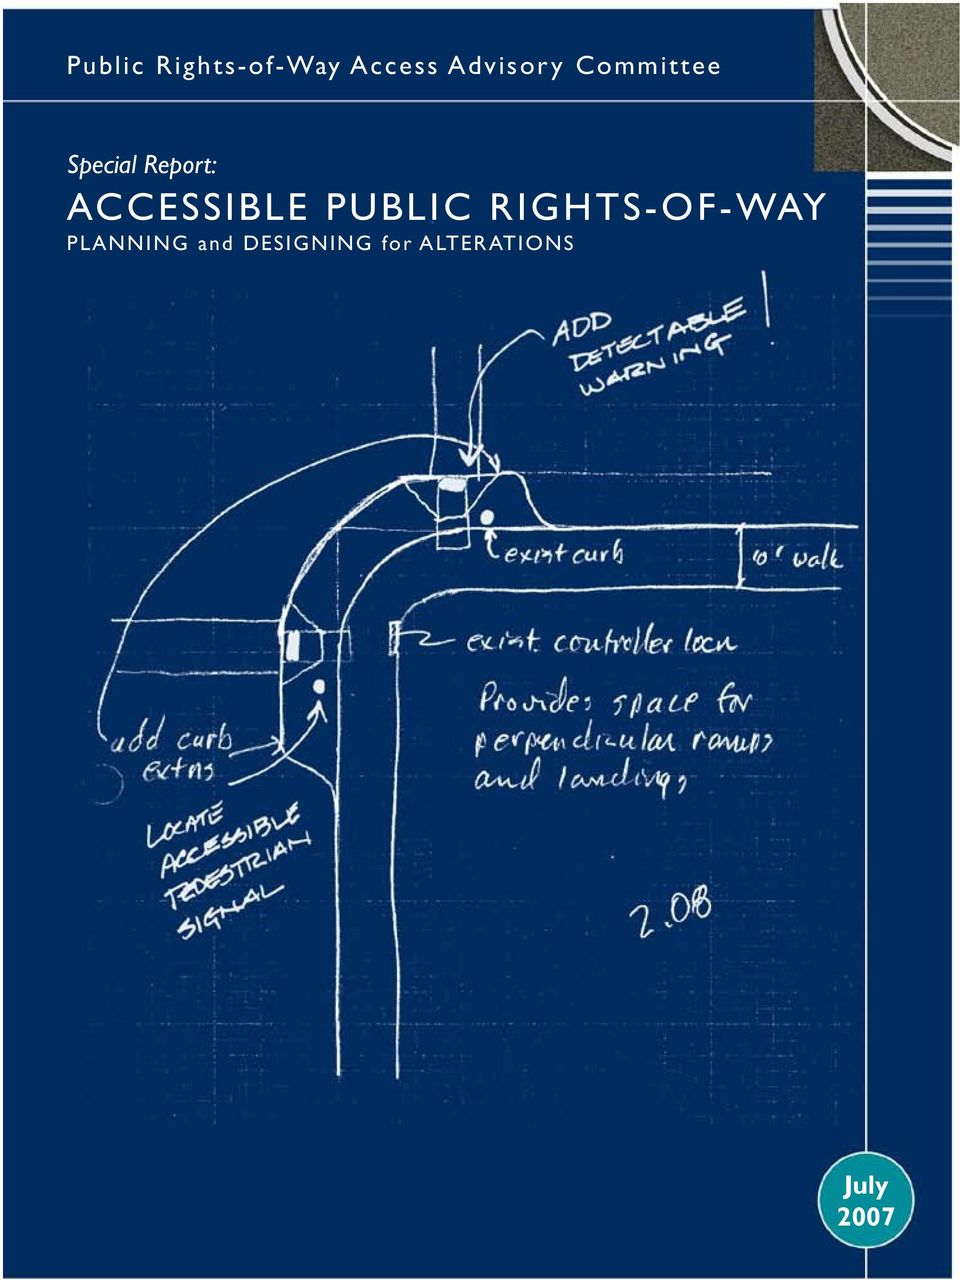 Accessible Public Rights-of-Way